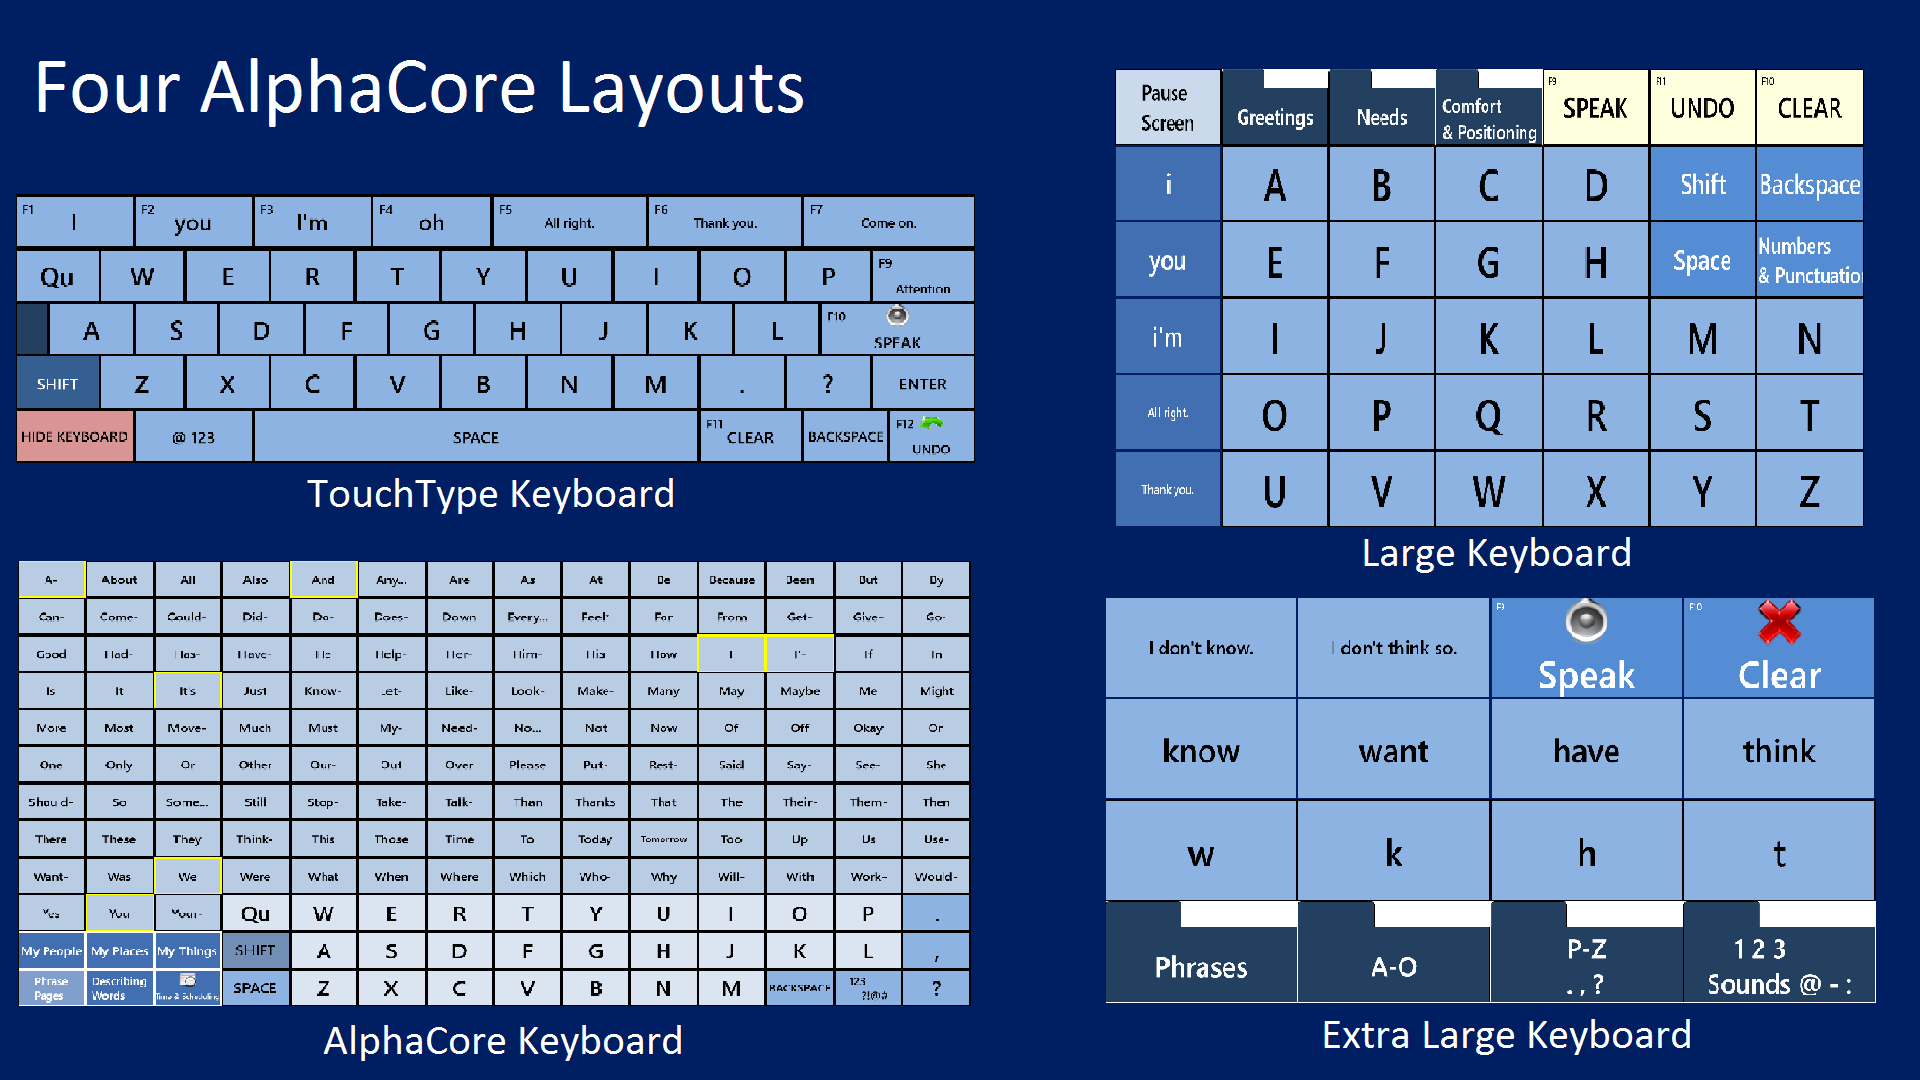 The 4 AlphaCore Keyboards